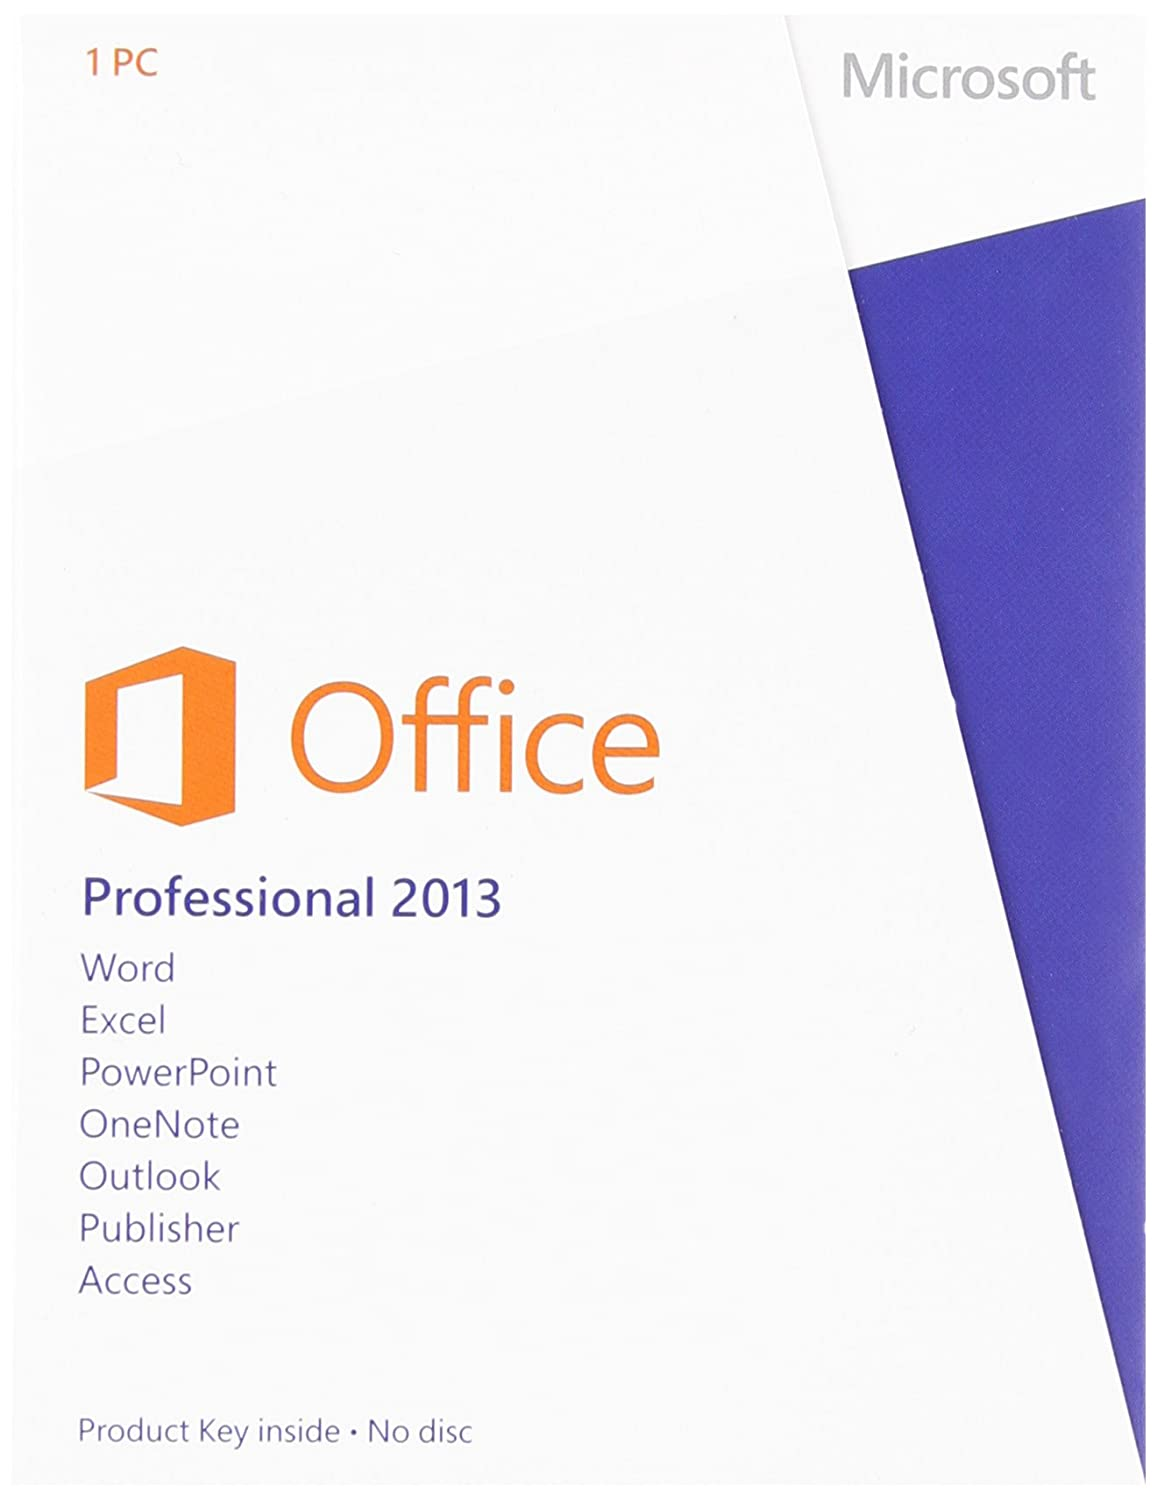 Amazon.com: Office Professional 2013 Key Card 1PC/1User: Microsoft ...